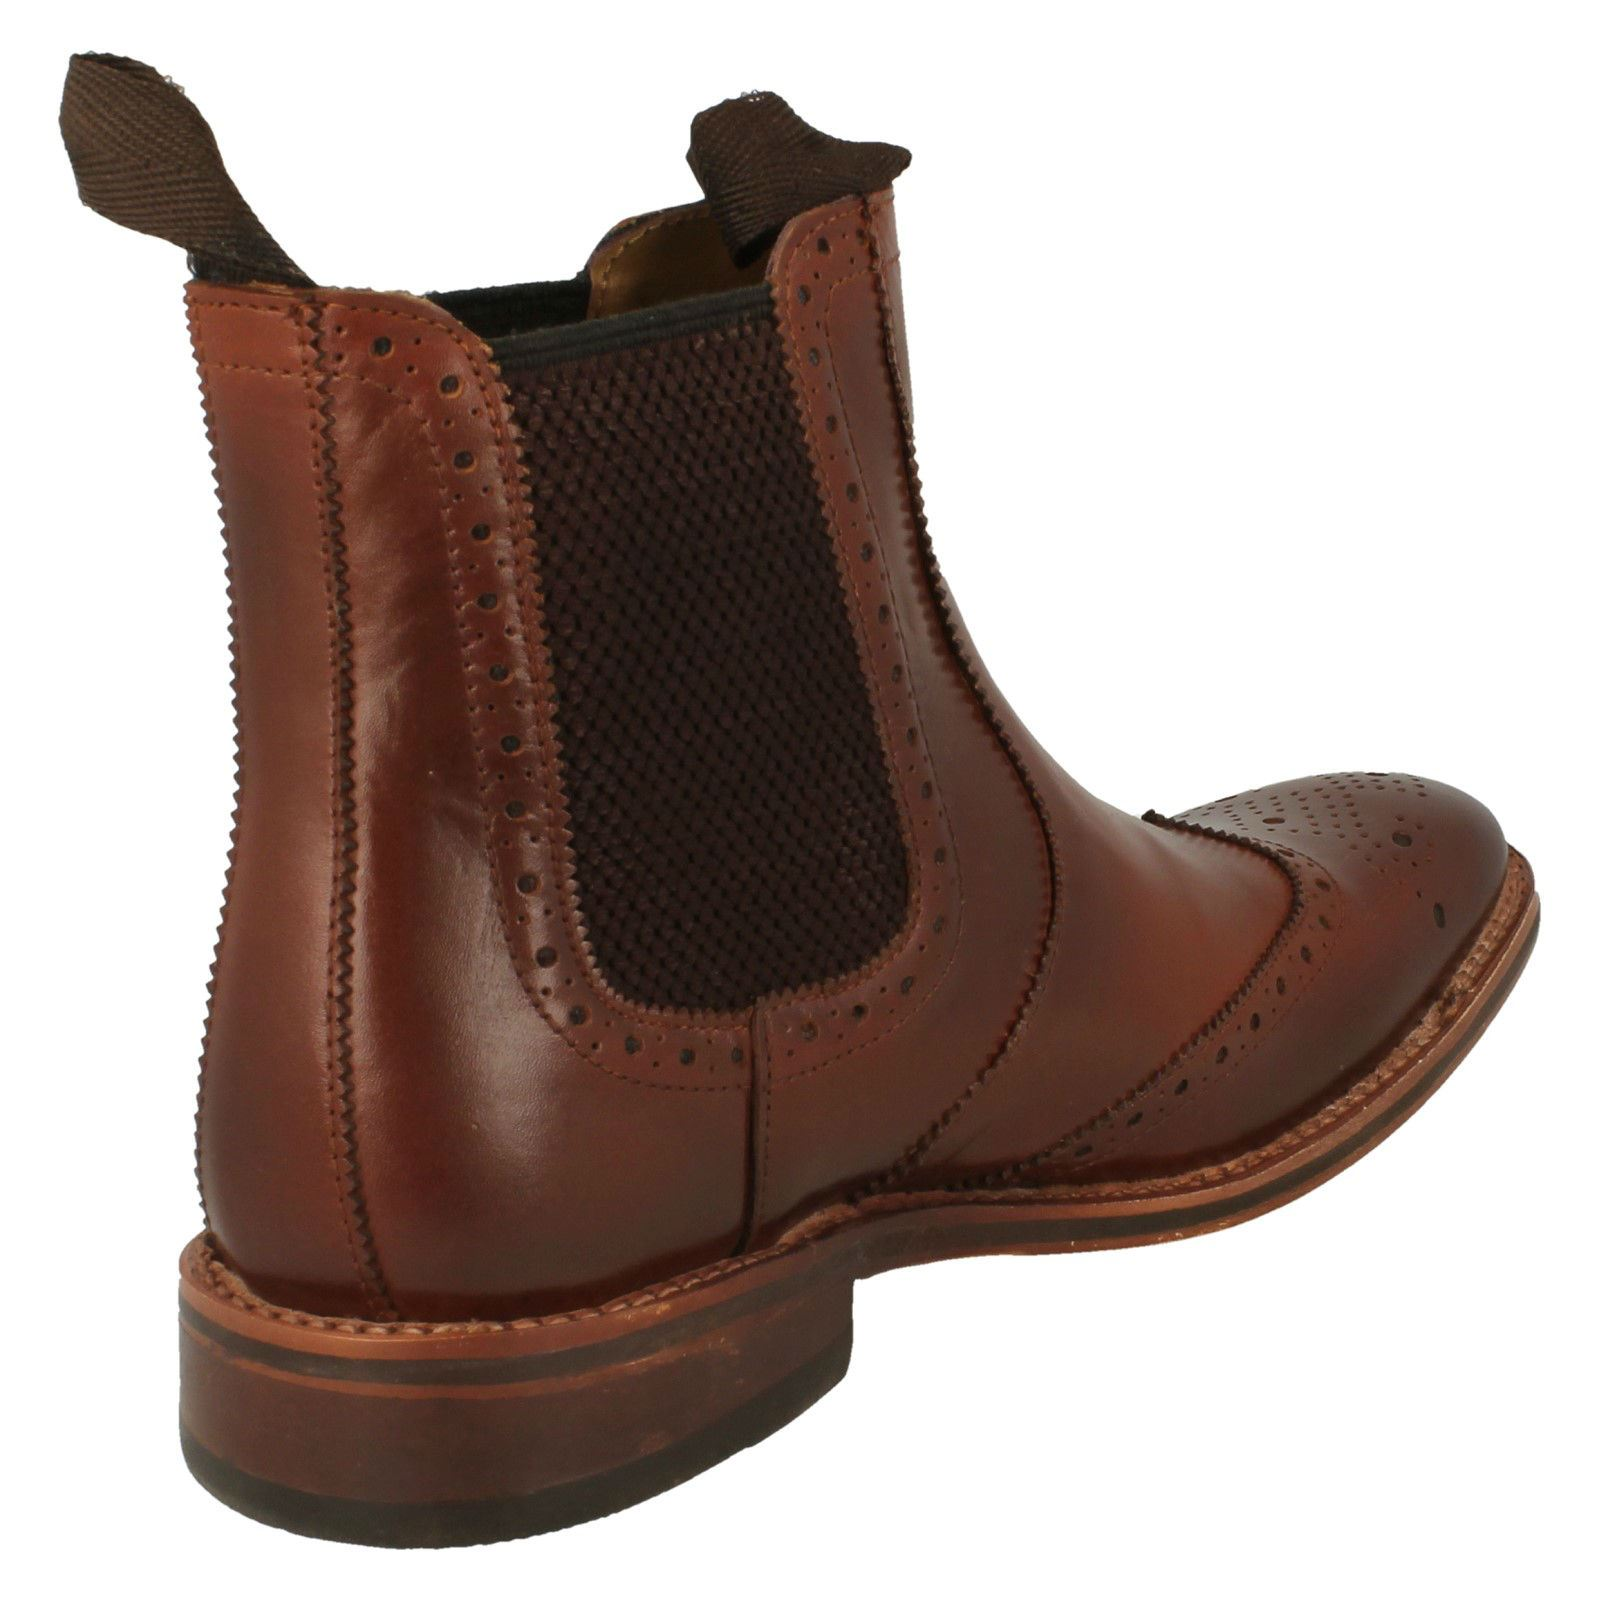 Mens-Catesby-Ankle-Boots-MCATESCW158T thumbnail 19